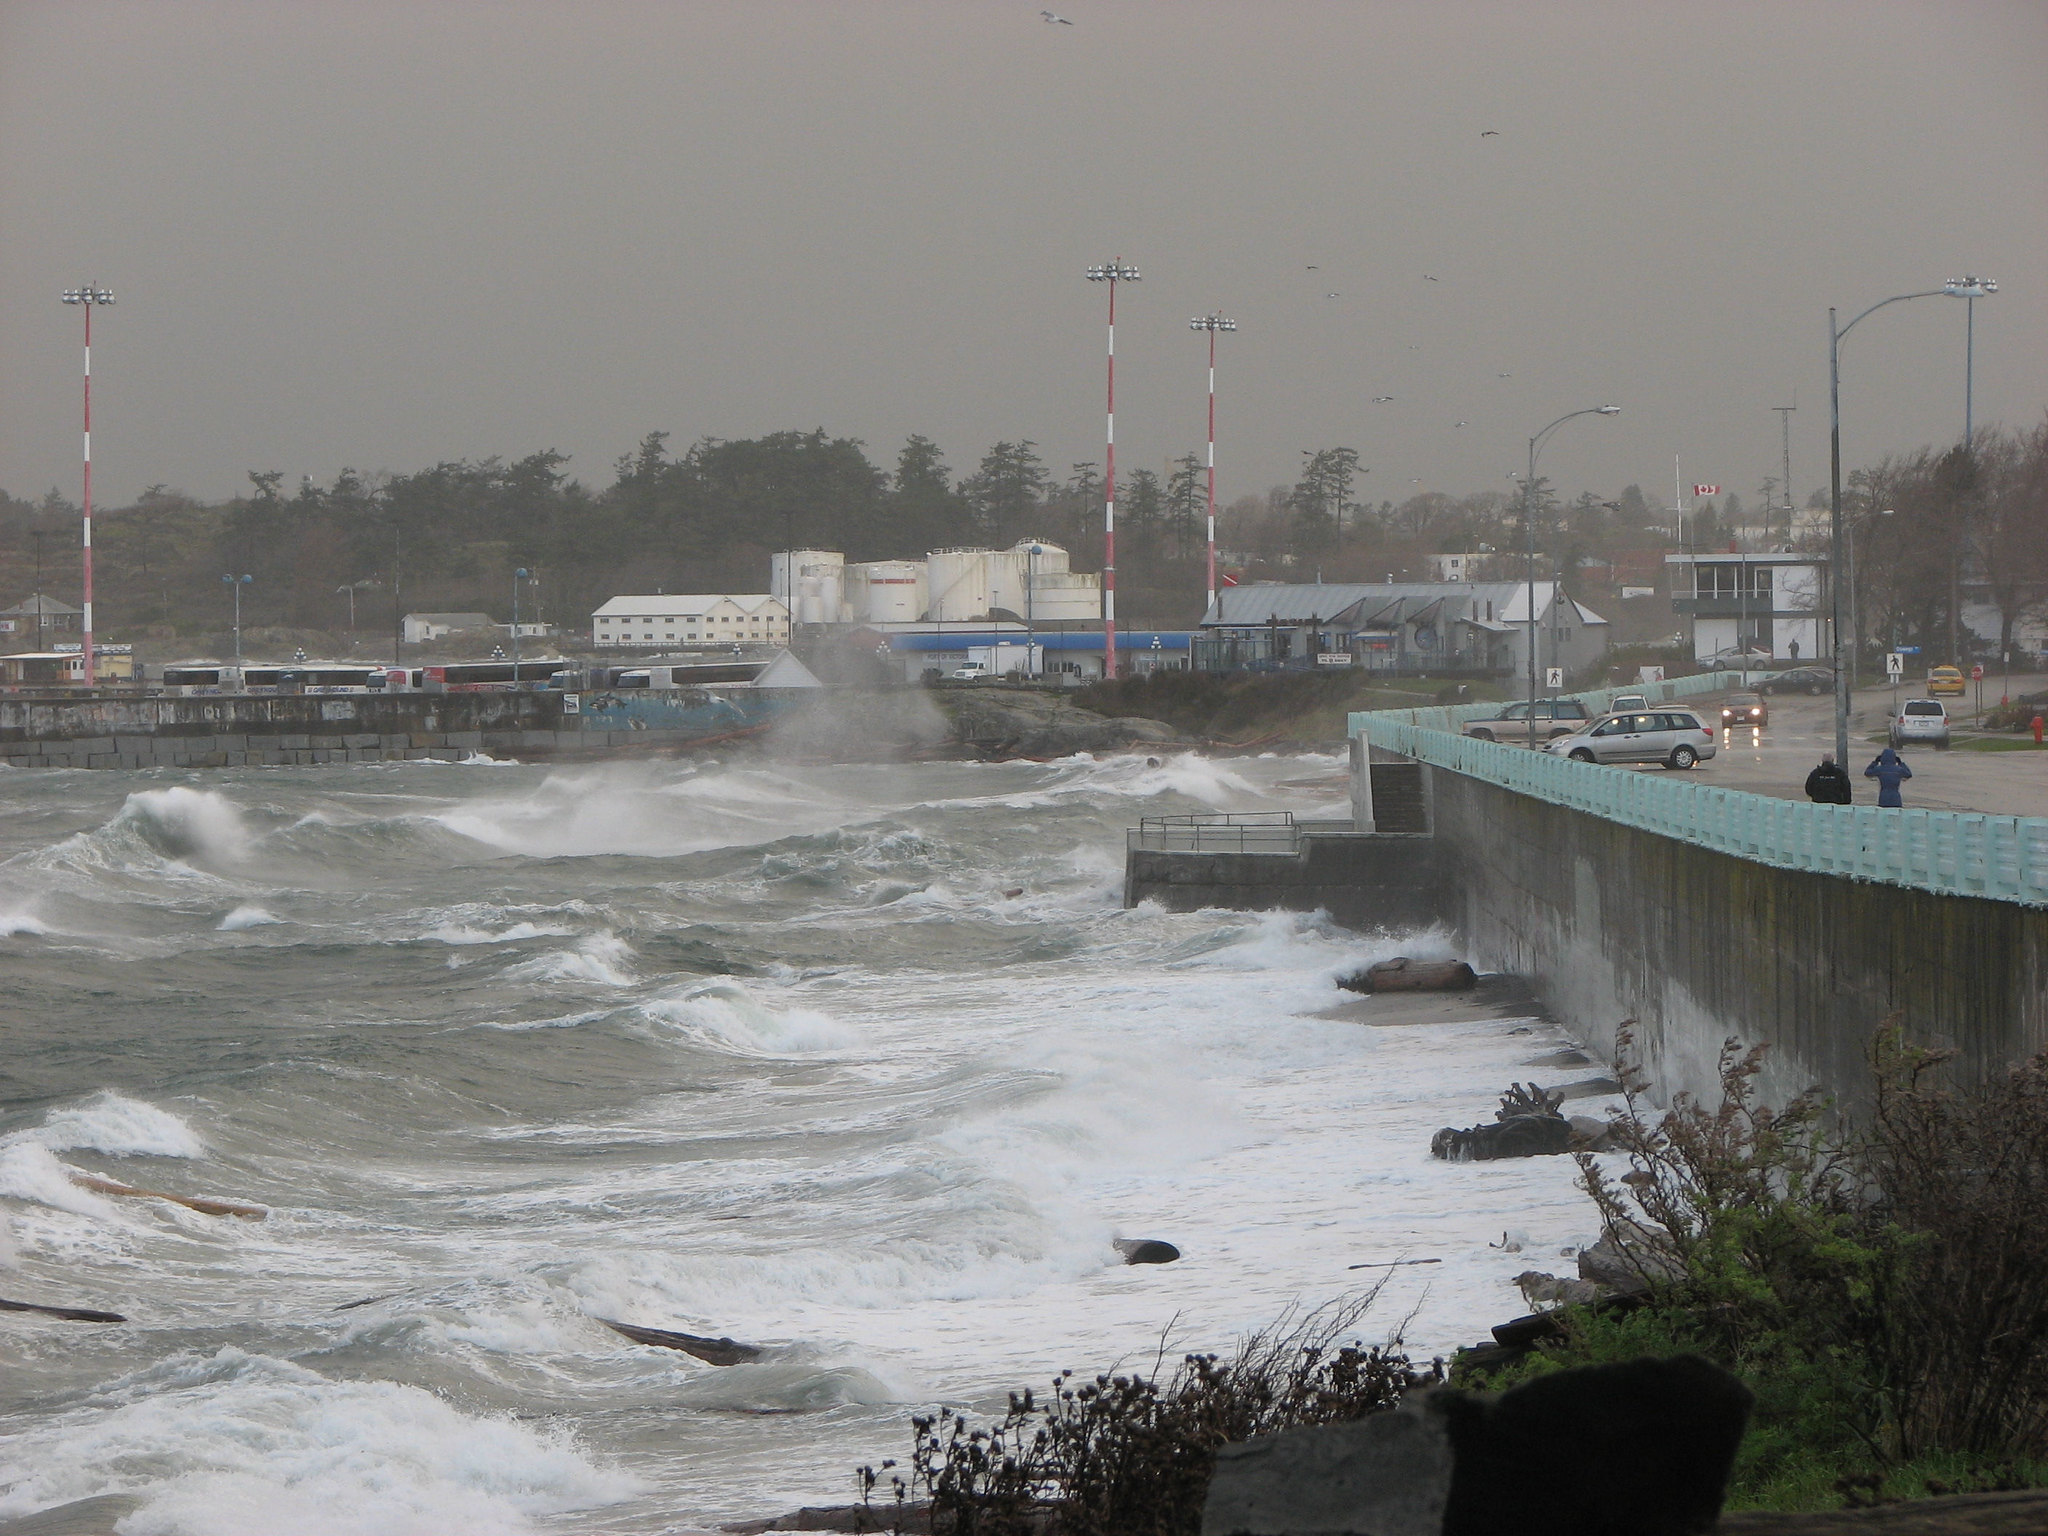 Coastal storm, Vancouver Island (Photo: Harold via Flickr)